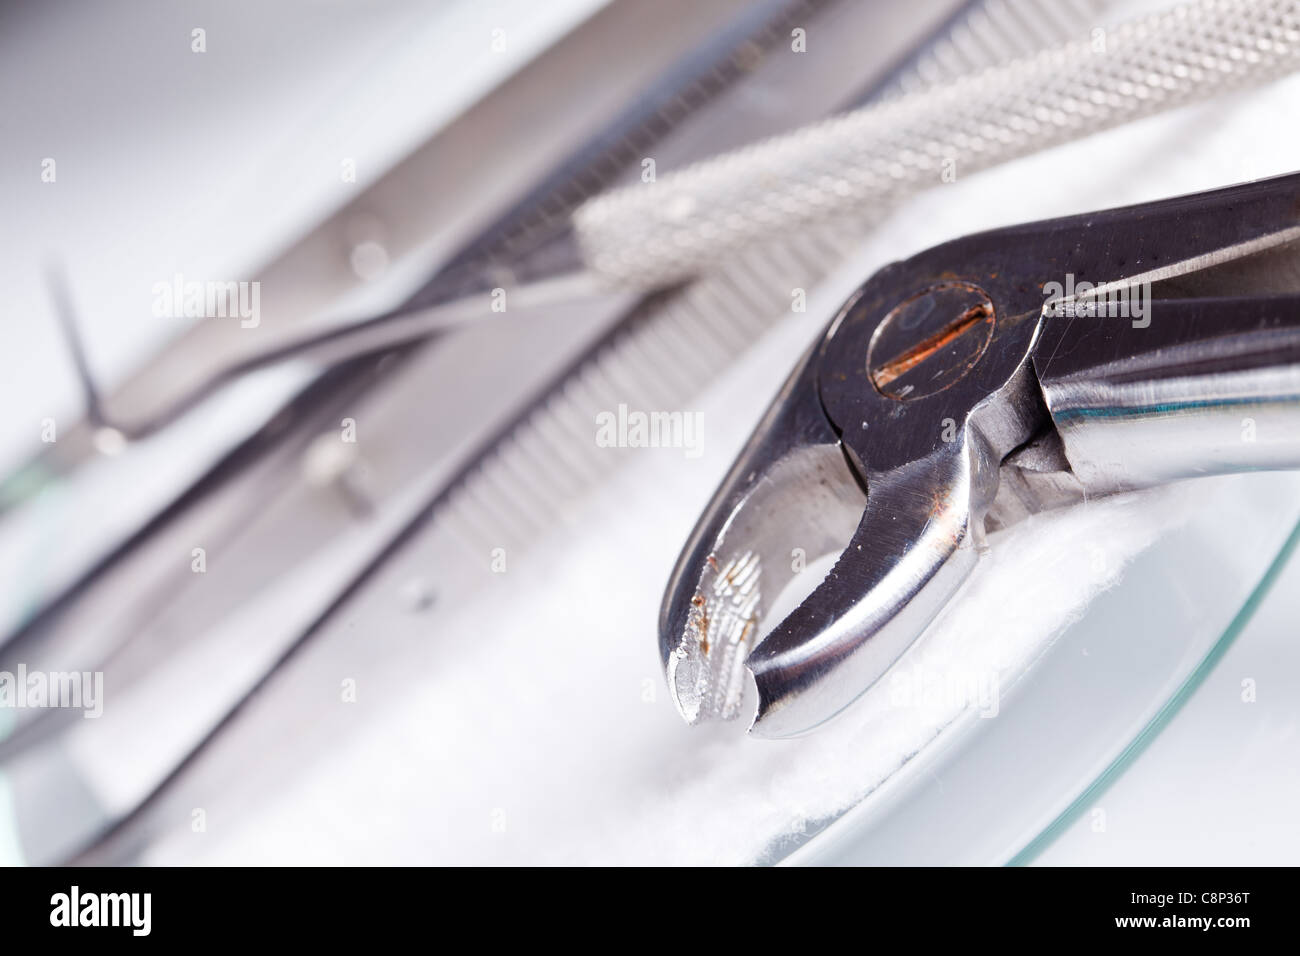 dentistry equipment and dental care - Stock Image